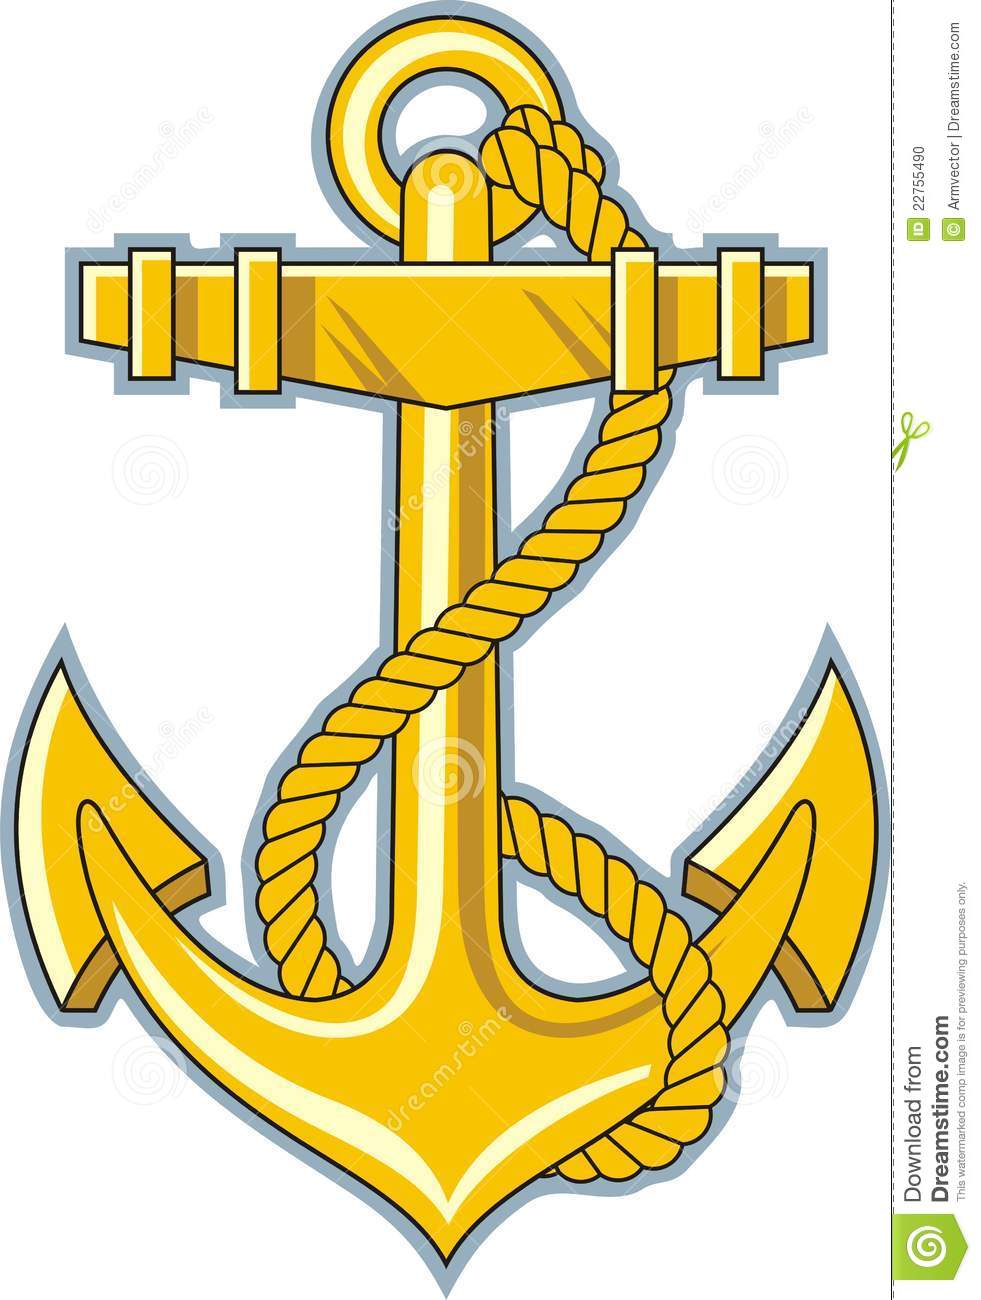 United states navy clip art free download Us Navy Logo Clipart - Clipart Kid free download